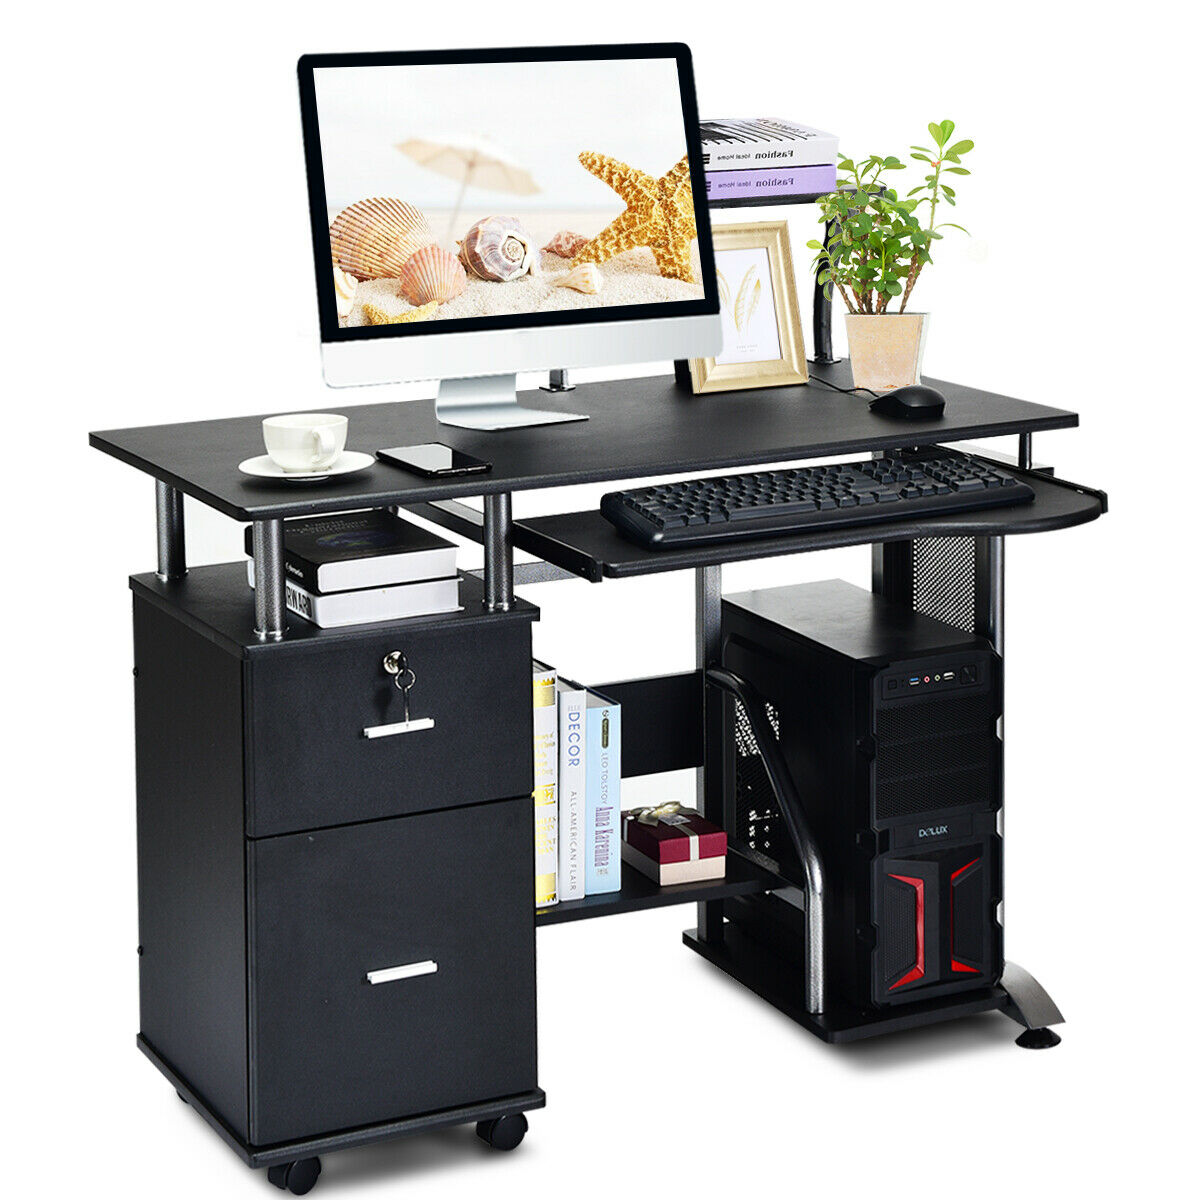 Computer Desk Pc Laptop Table Workstation Home Office Furniture W Printer Shelf 1 Of 11free Shipping